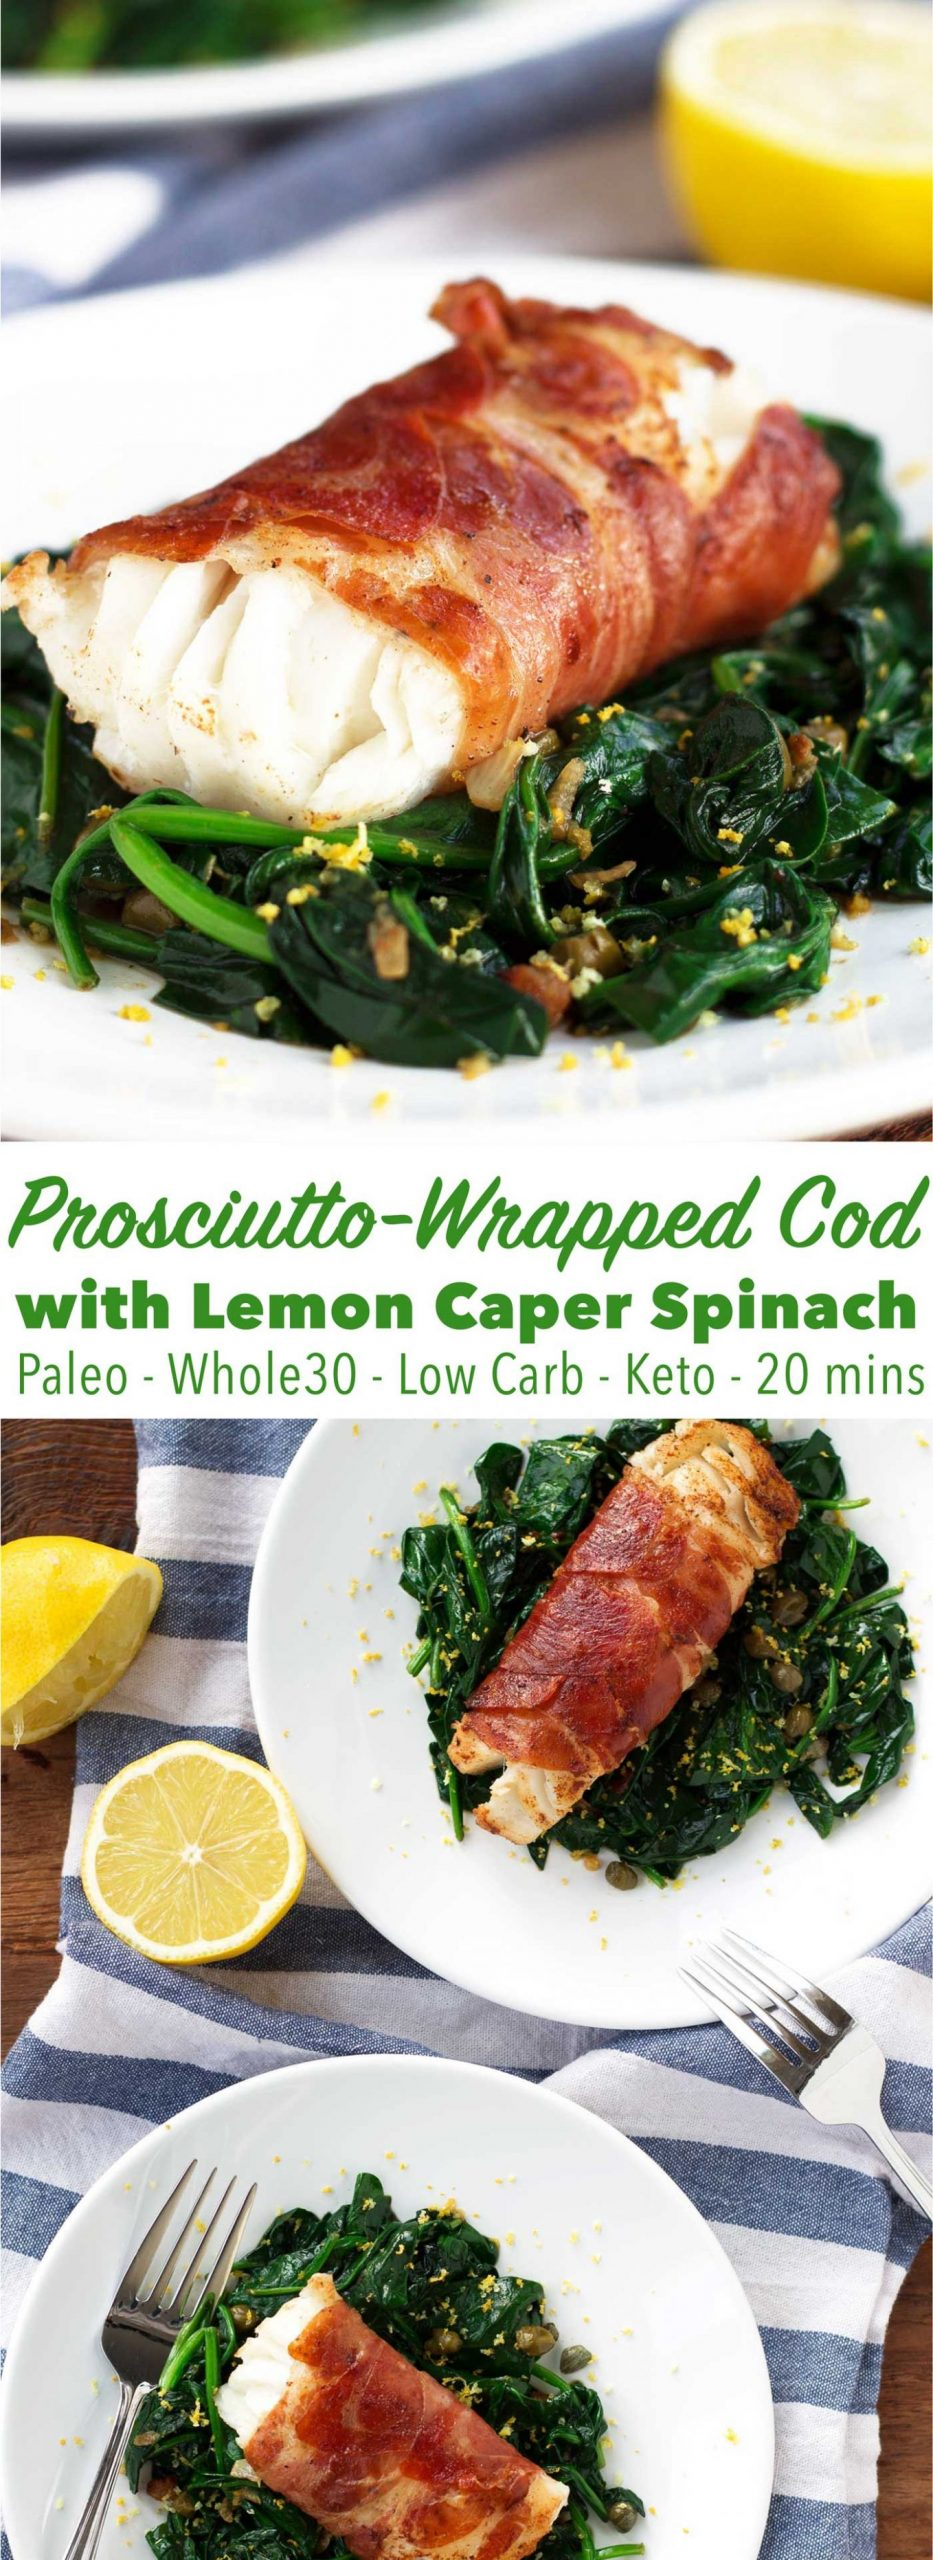 Prosciutto-Wrapped Cod with Lemon Caper Spinach - Kit's Coastal